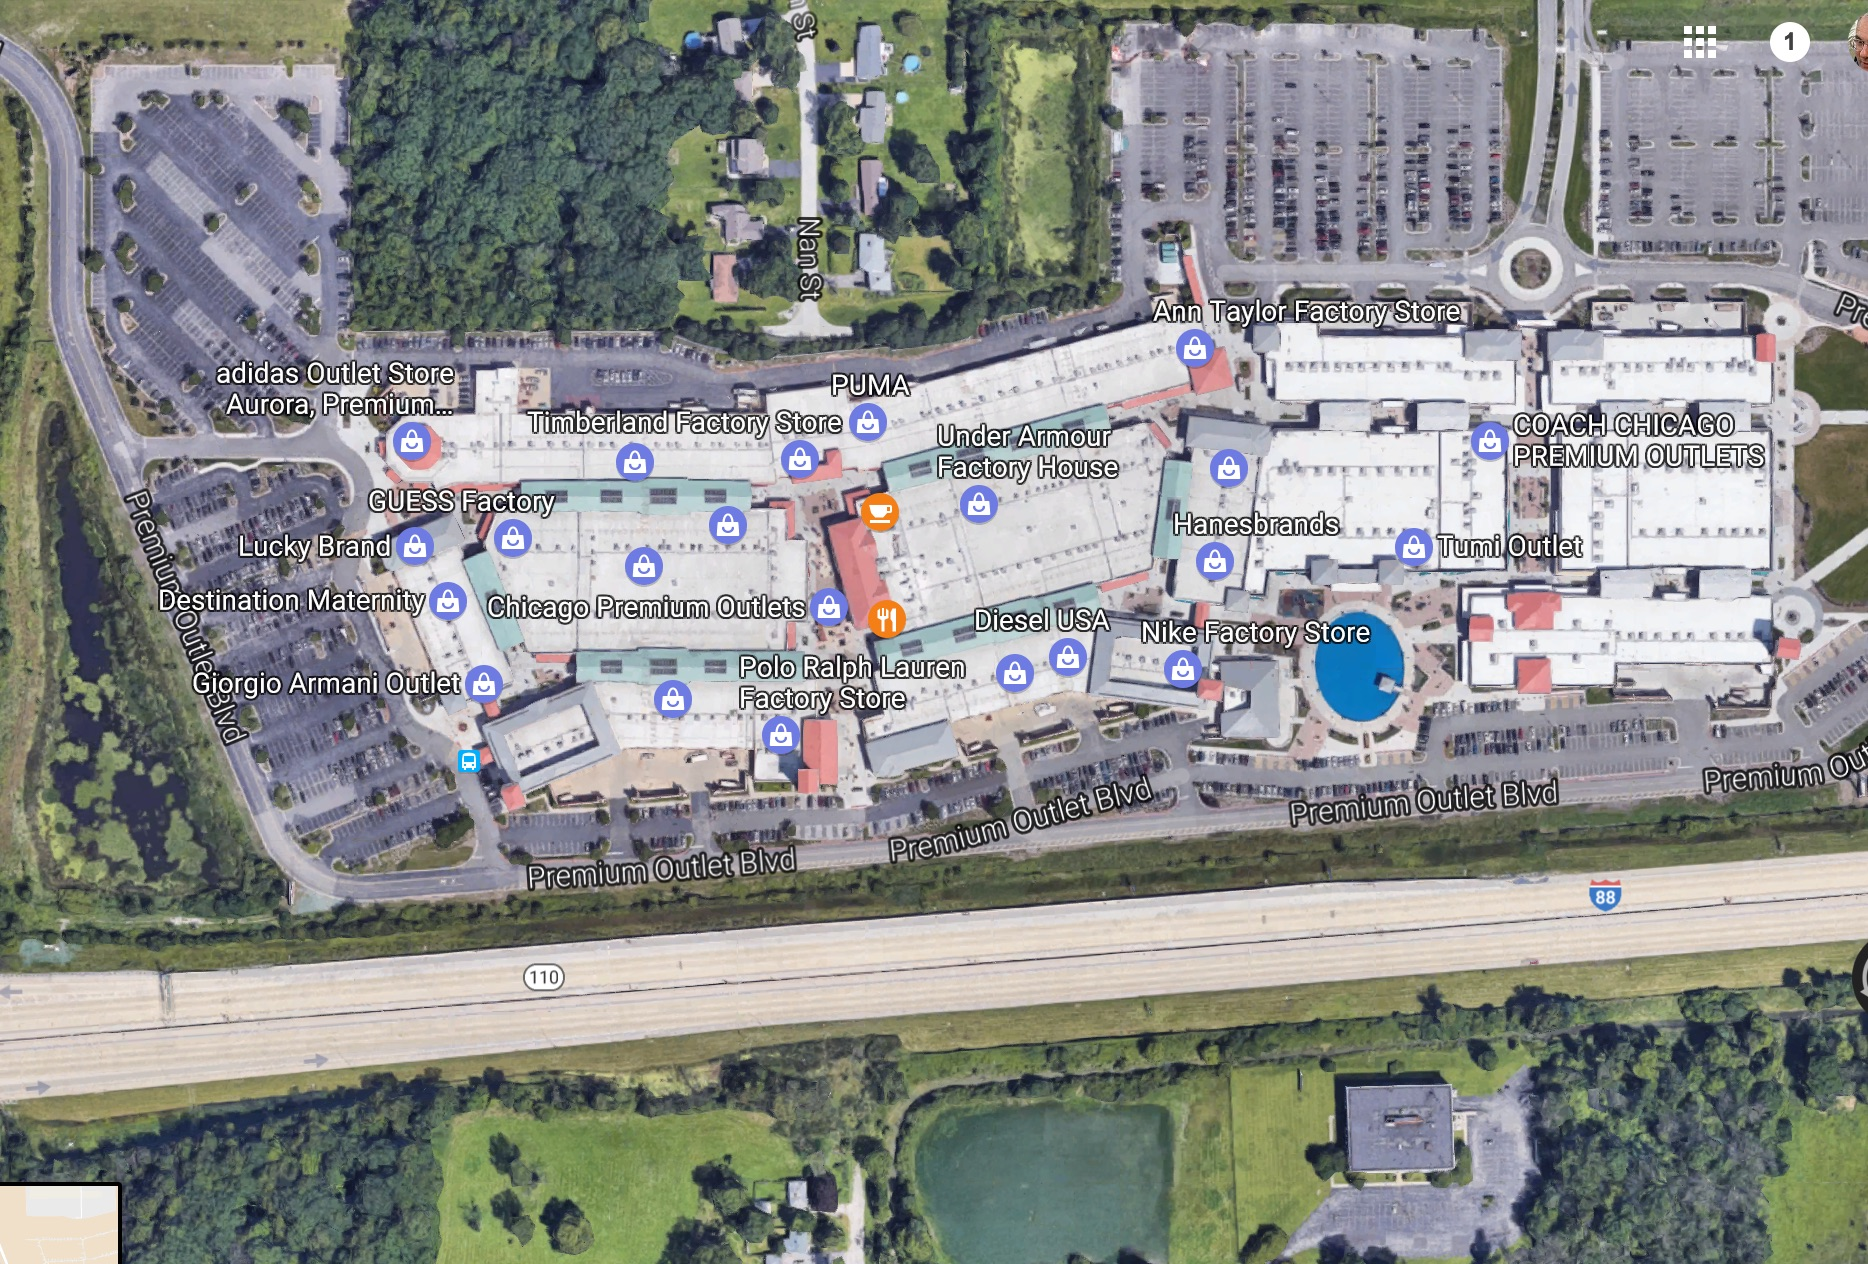 DataBid Project Of The Week Kirklands  Chicago Premium Outlets - Chicago map satellite